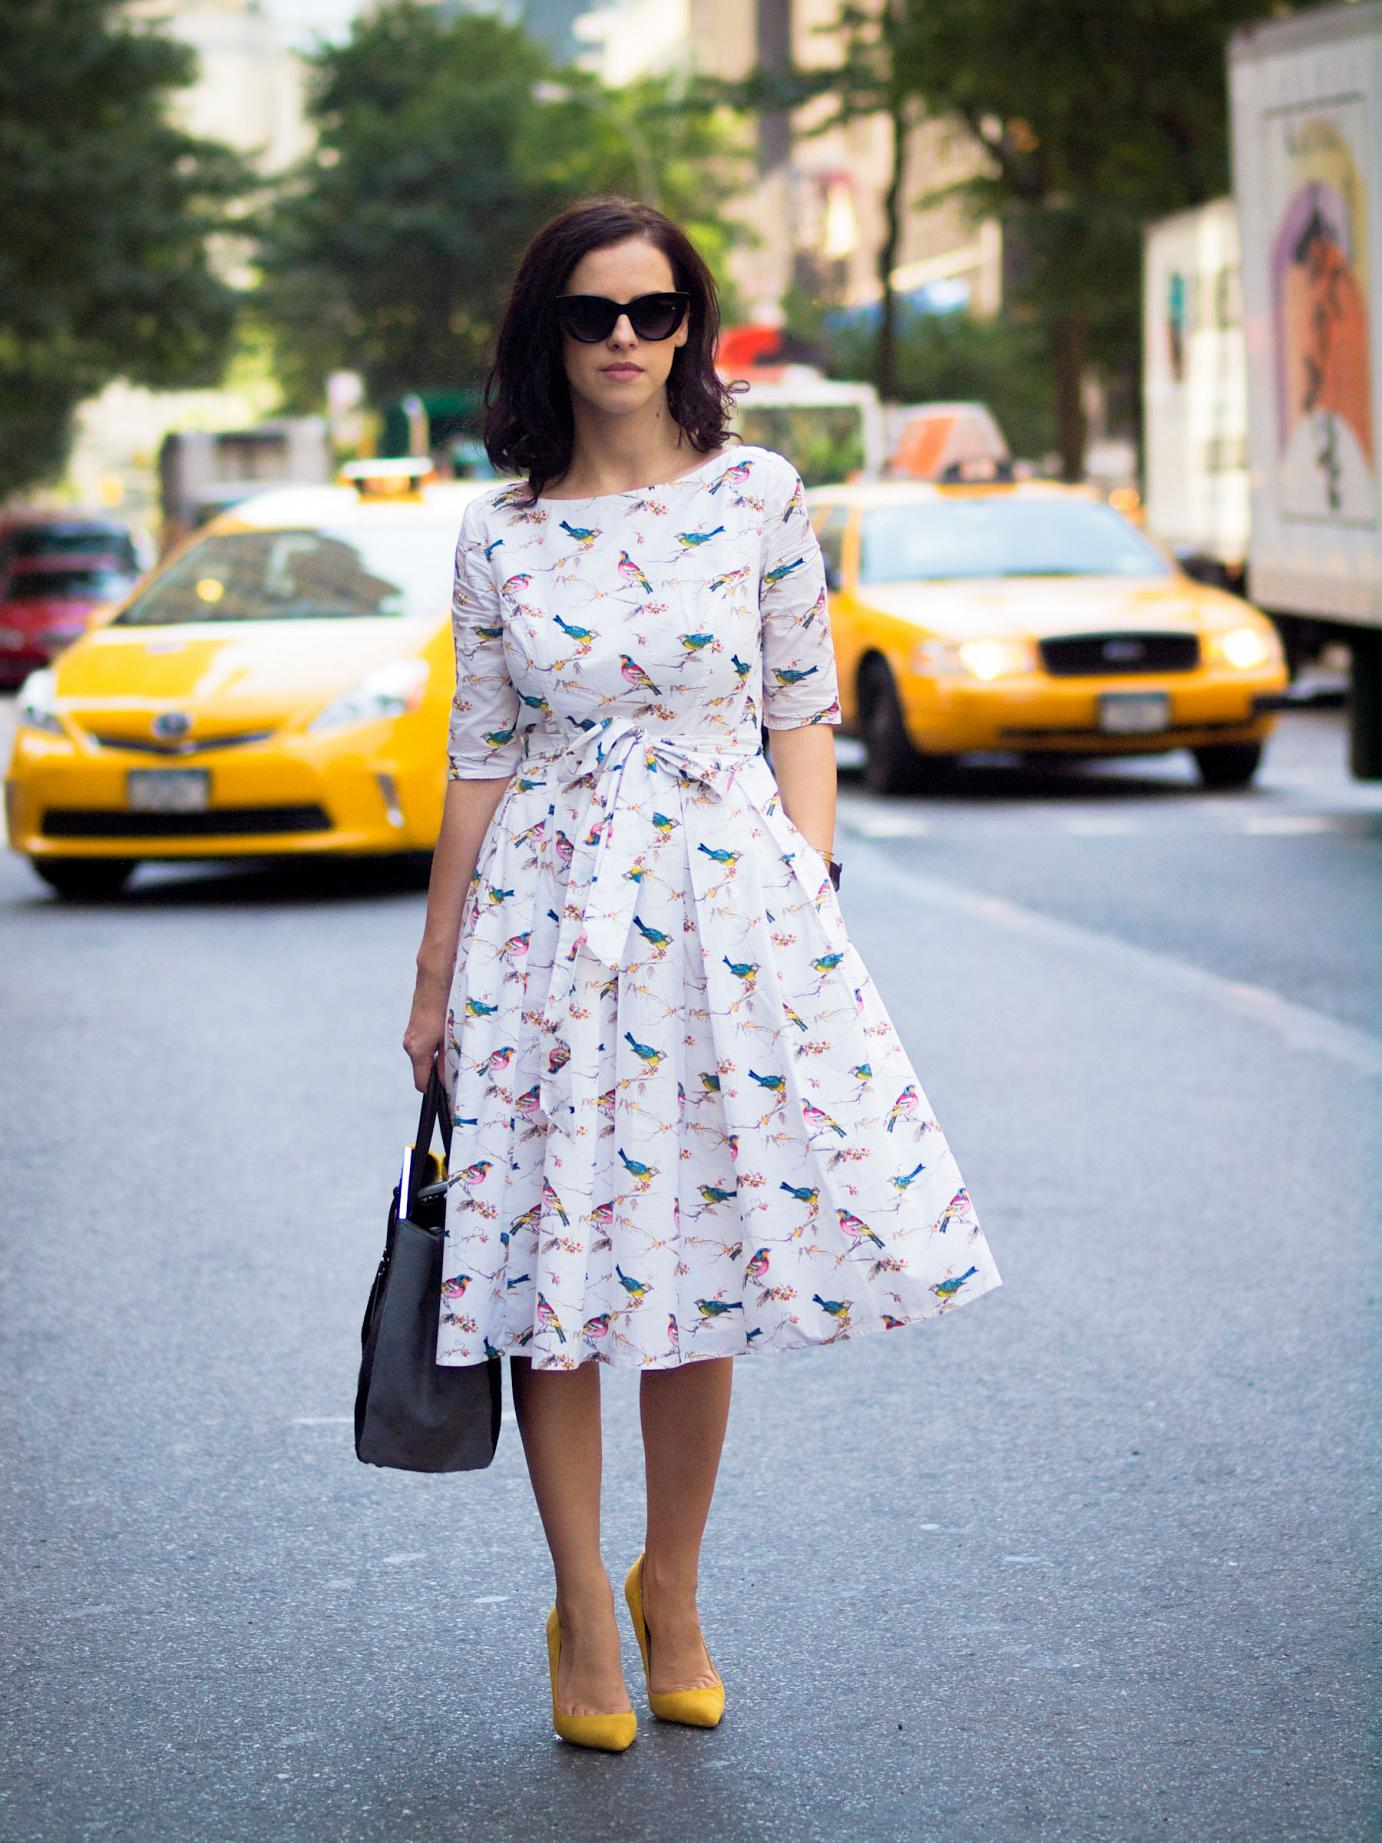 bittersweet colours, nyfw, lincoln center nyfw, street style, new york, fendi 2jours bag, fendi bag, yellow shoes, asos sunglasses, eye cat sunglasses, feminine style, bird print dress, whire dress, cooee jewelry